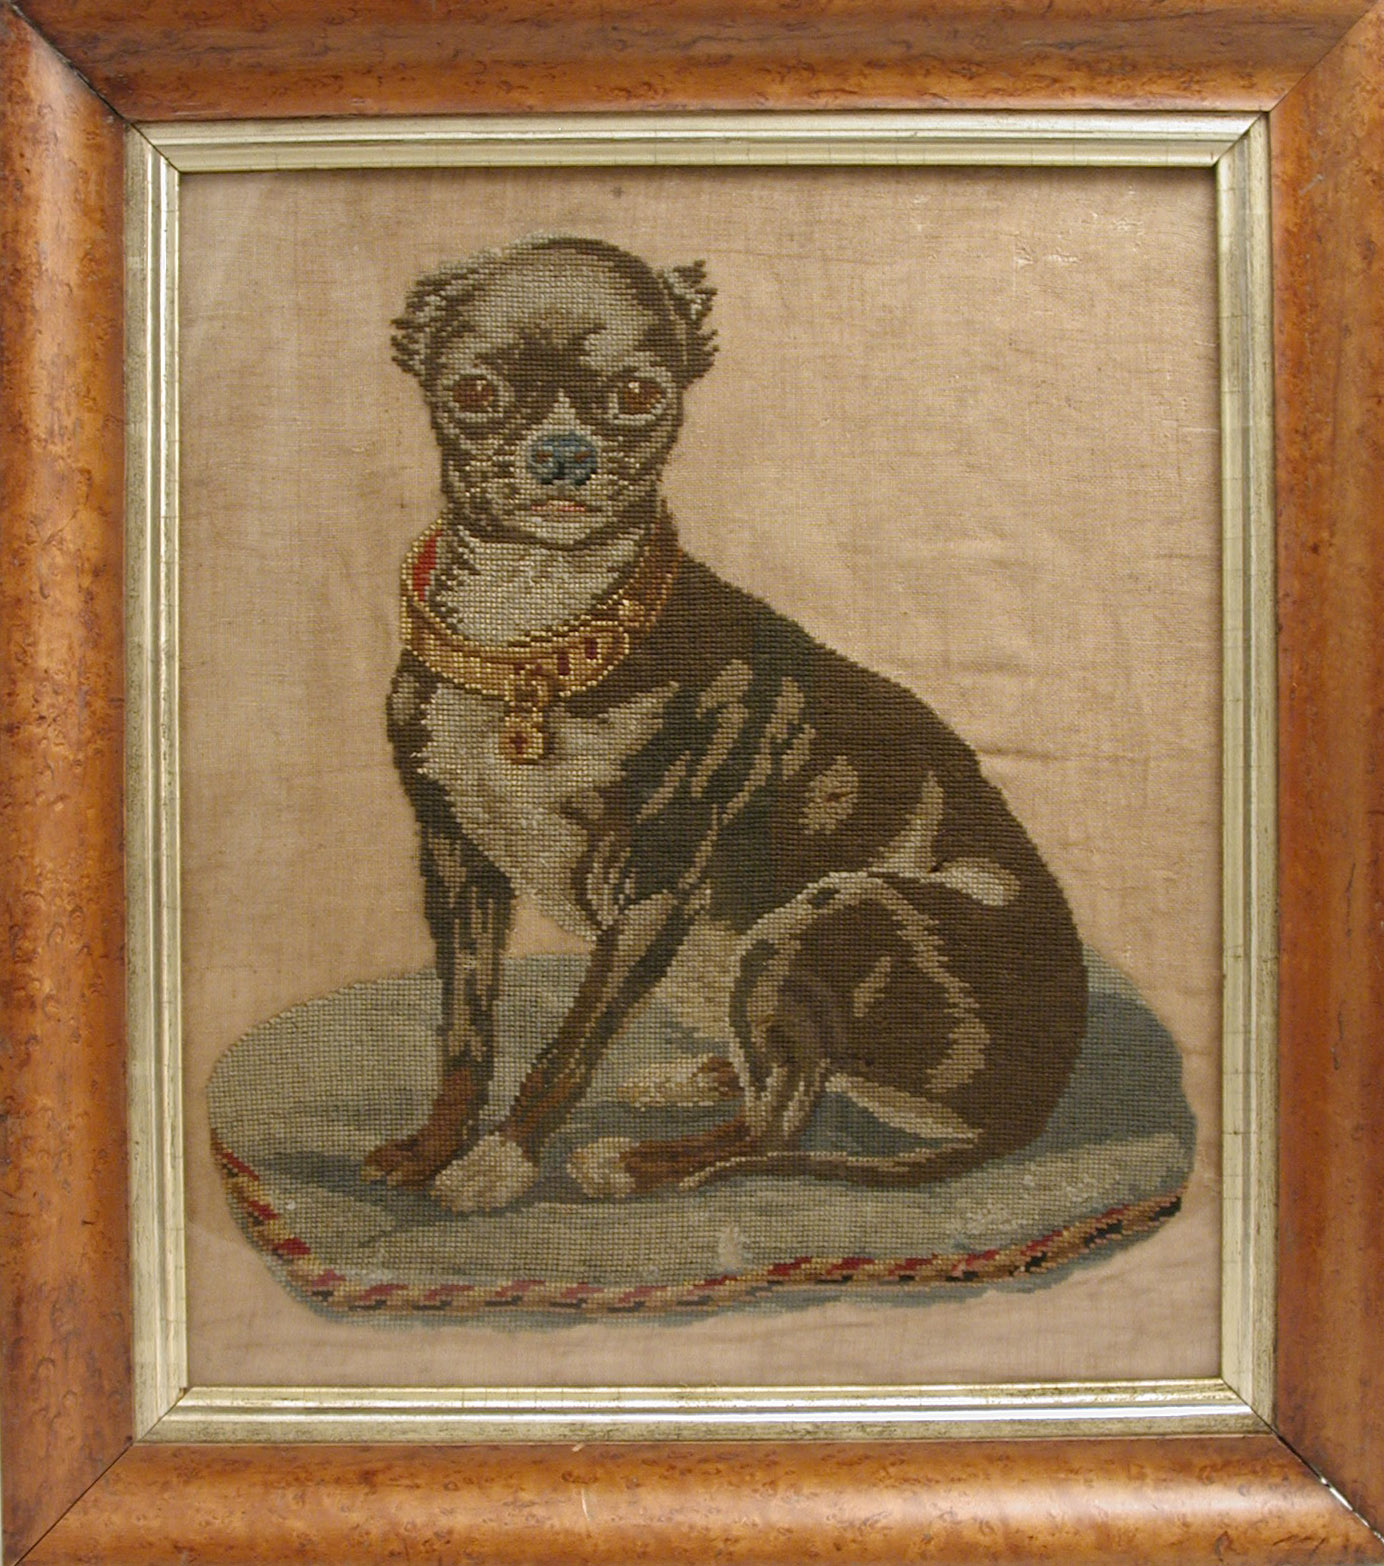 Click for larger image: Needlepoint  needlework  textile  tapestry of a Bruxellois Griffon  Brabancon - Needlepoint  needlework  textile  tapestry of a Bruxellois Griffon  Brabancon